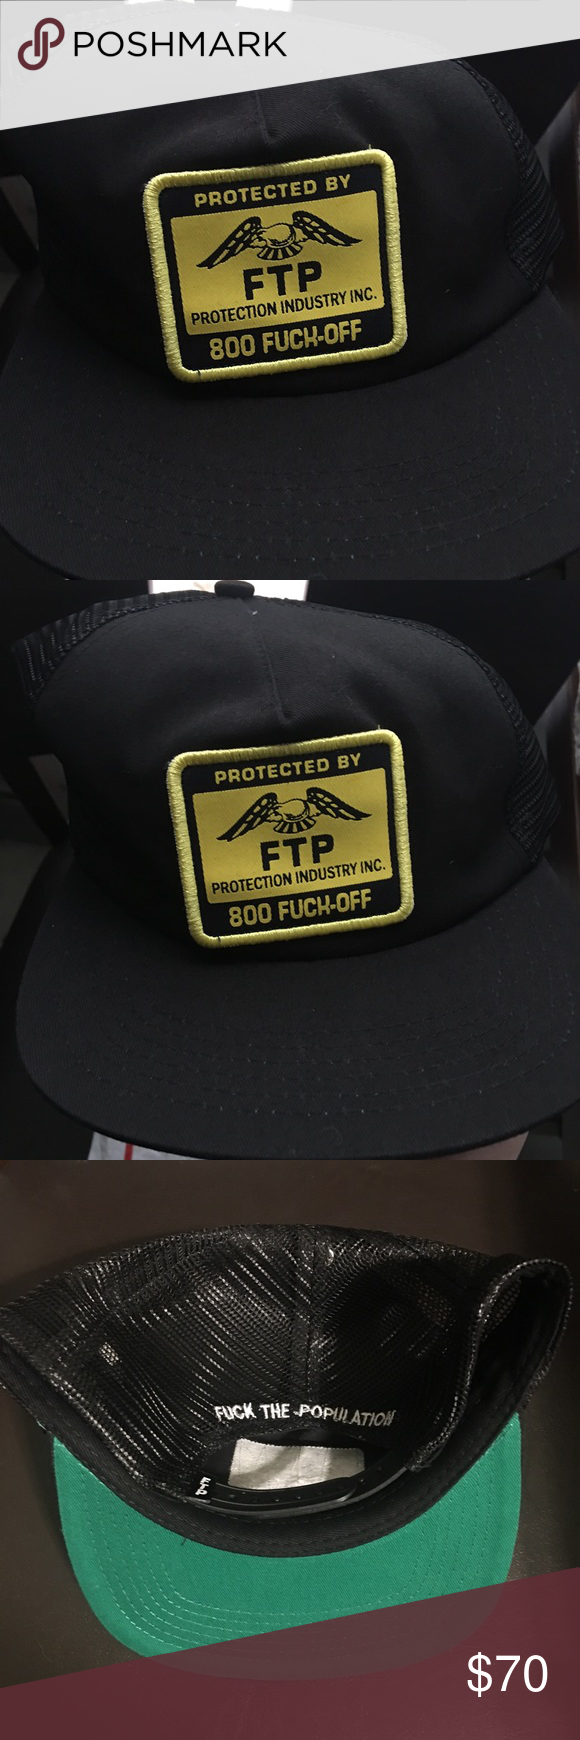 a88e8f278b6 Black FTP Protection Patch Snapback Trucker Hat Black FTP F ck The  Population Protection Patch Snapback Trucker Hat. Hat was only worn one  time.